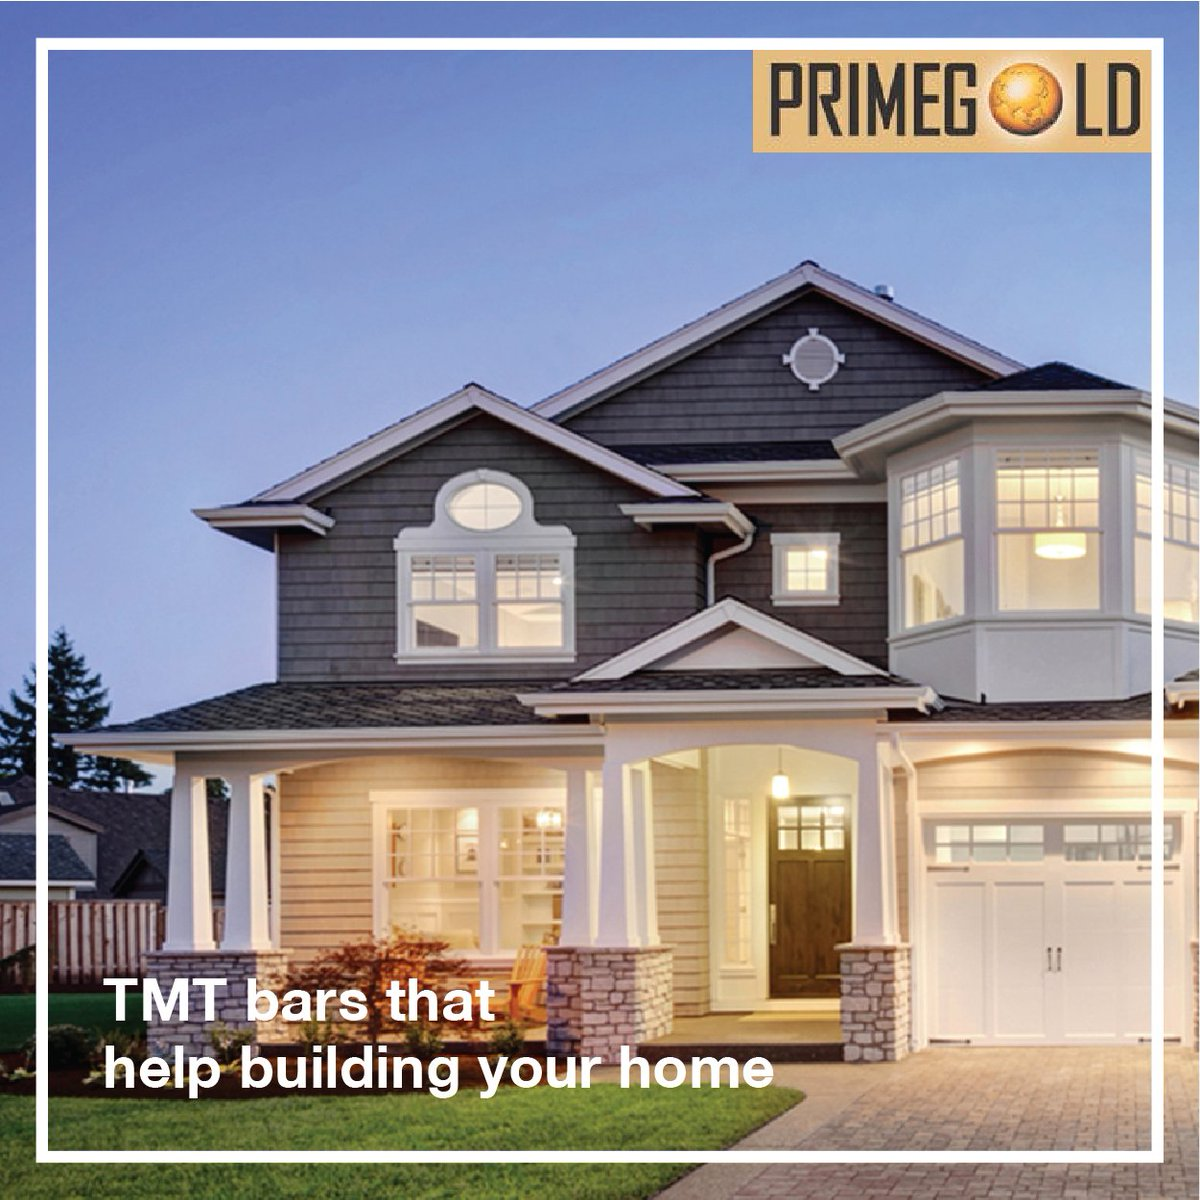 Let Primegold Tmt Bars Build Your Dream House Strong And Distinct Know More At Https Goo Gl 4tpg4r Construction Cement Buildingconstruction Sspipes